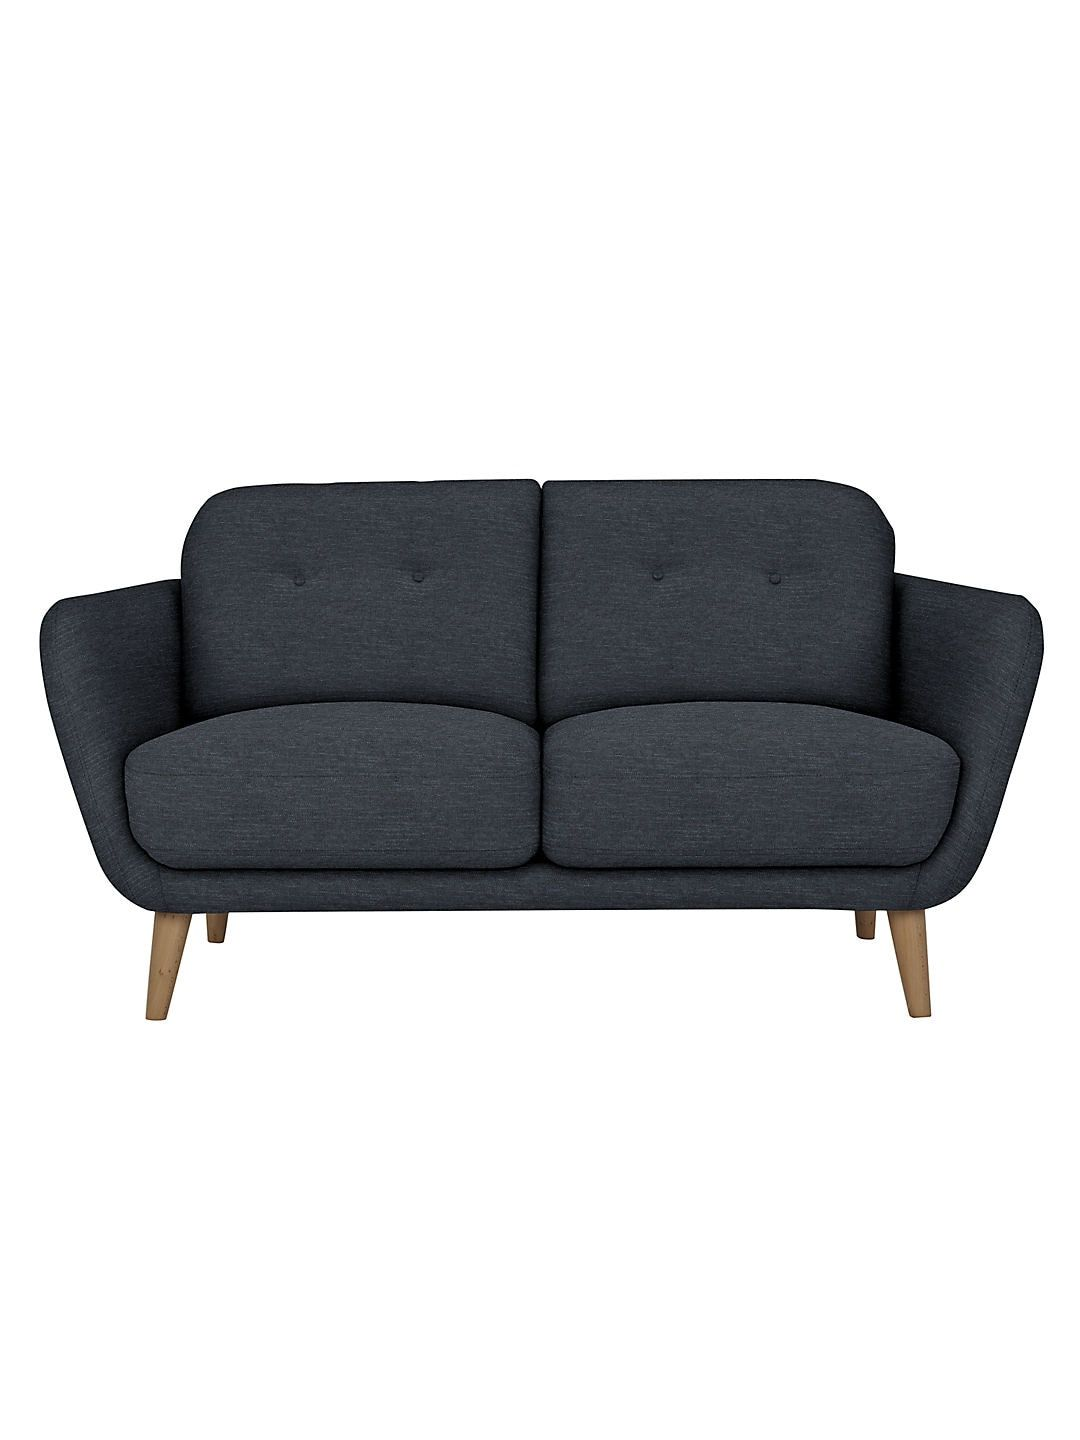 House By John Lewis Arlo Small 2 Seater Sofa Light Leg 2 Seater Sofa Seater Sofa Sofa